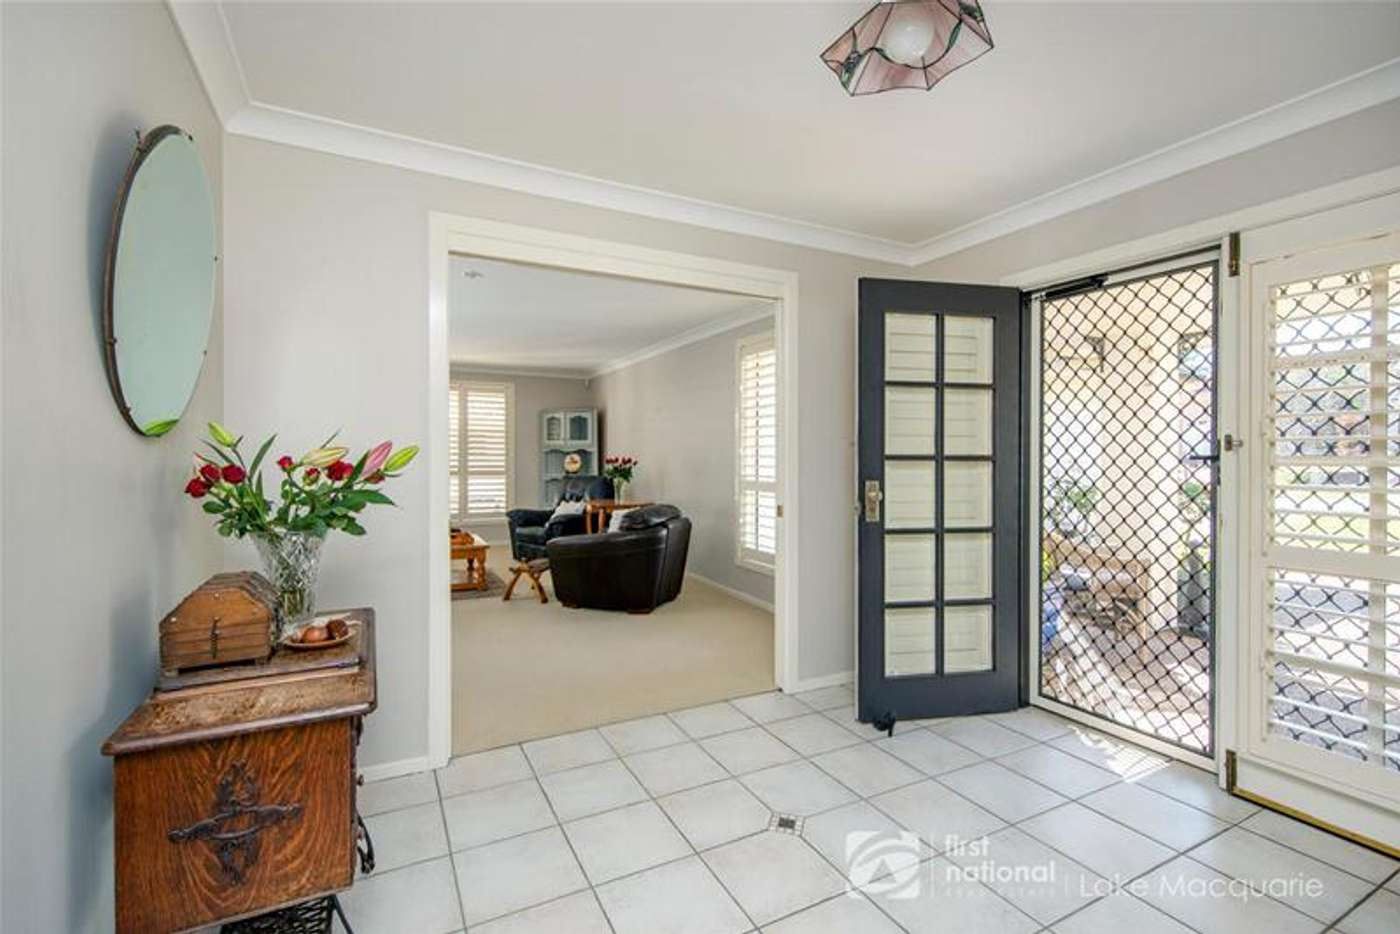 Sixth view of Homely house listing, 28 Condor Circuit, Lambton NSW 2299